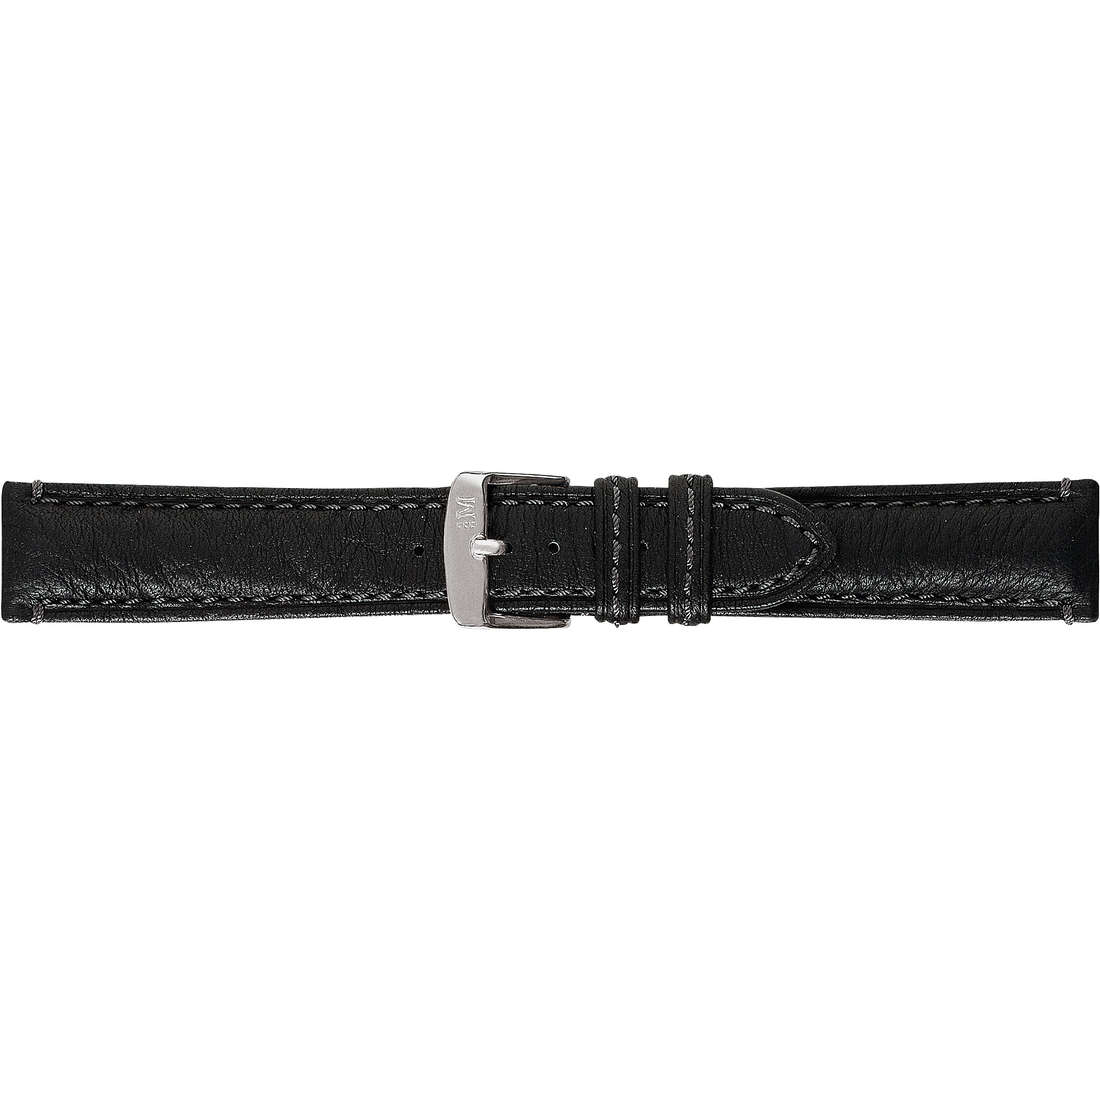 watch watch bands watch straps man Morellato Manufatti A01U3221767019CR18